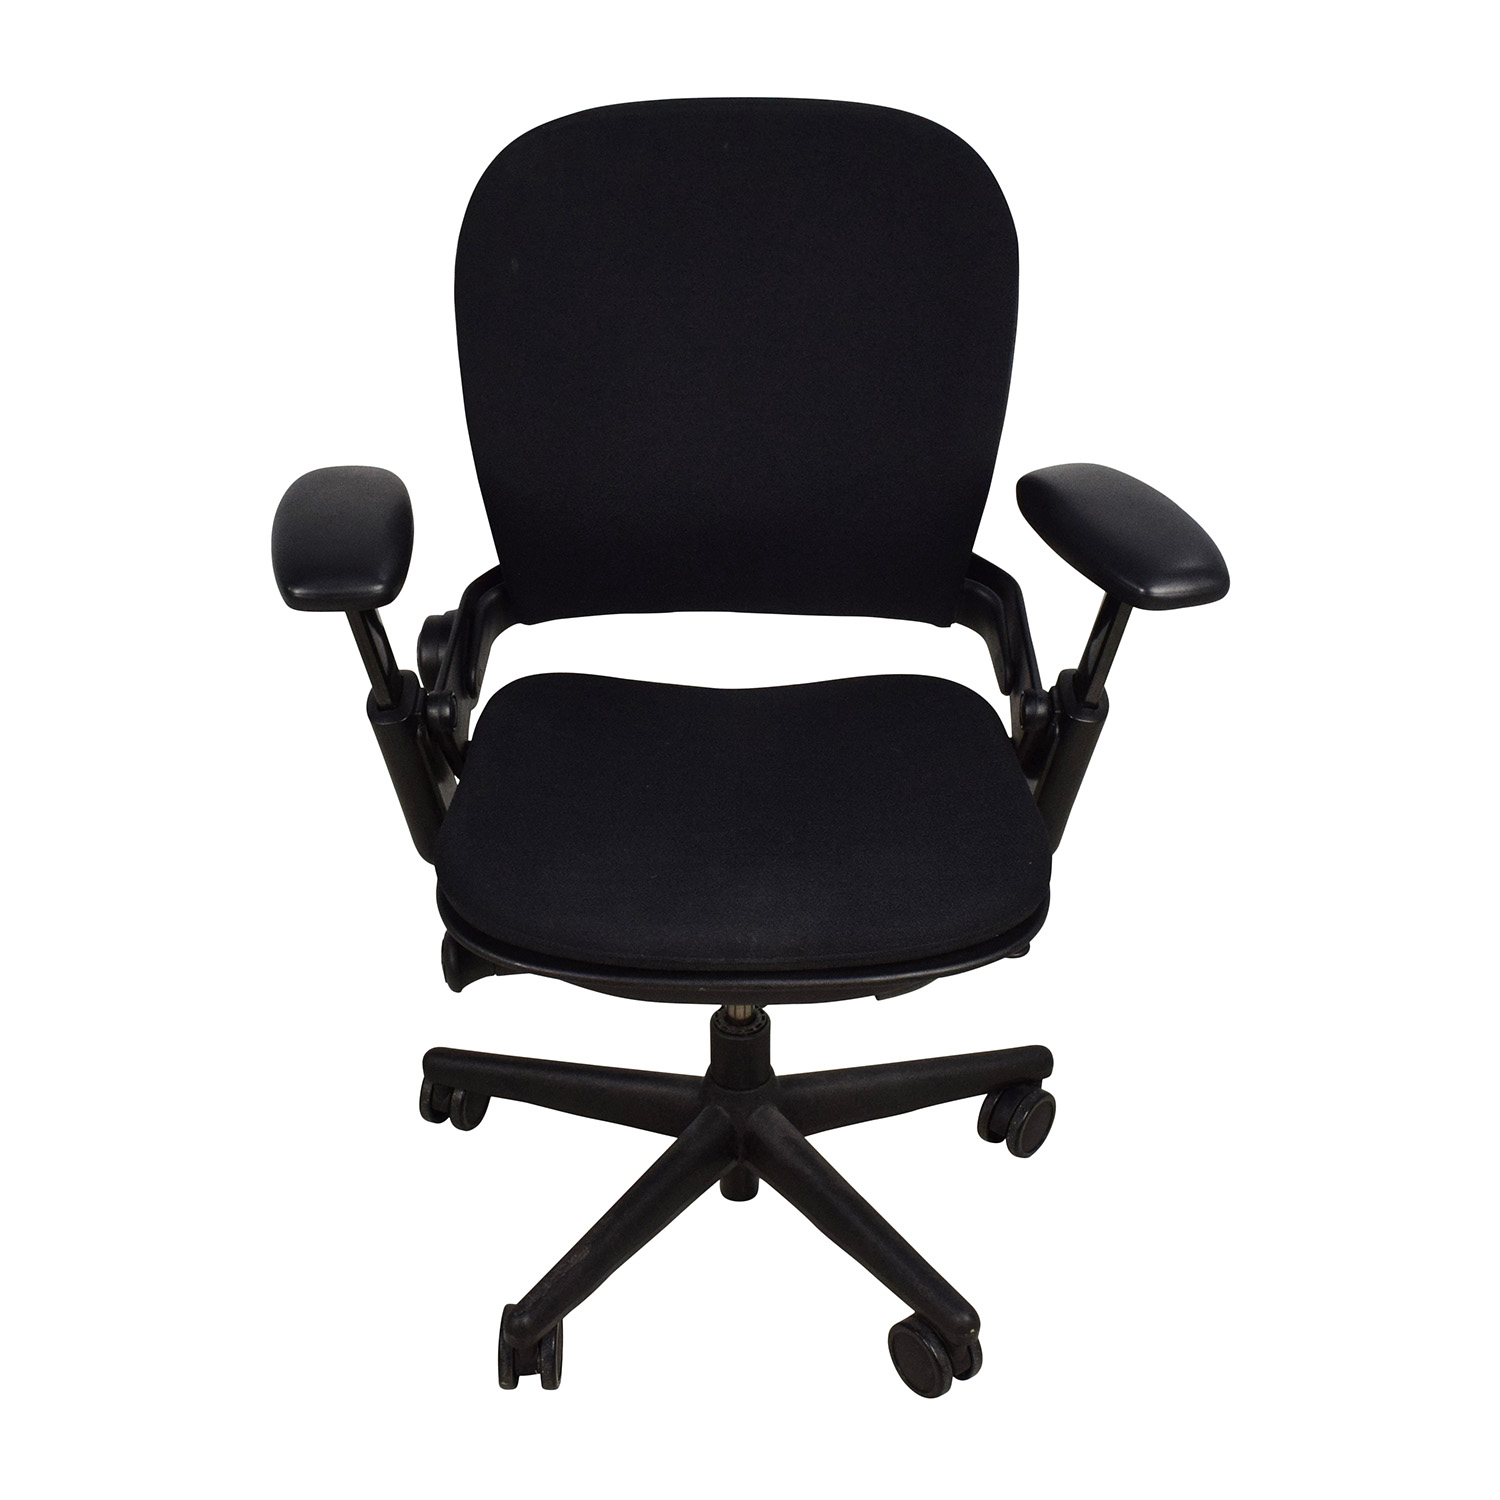 ... Adjustable Black Office Desk Chair Chairs ...